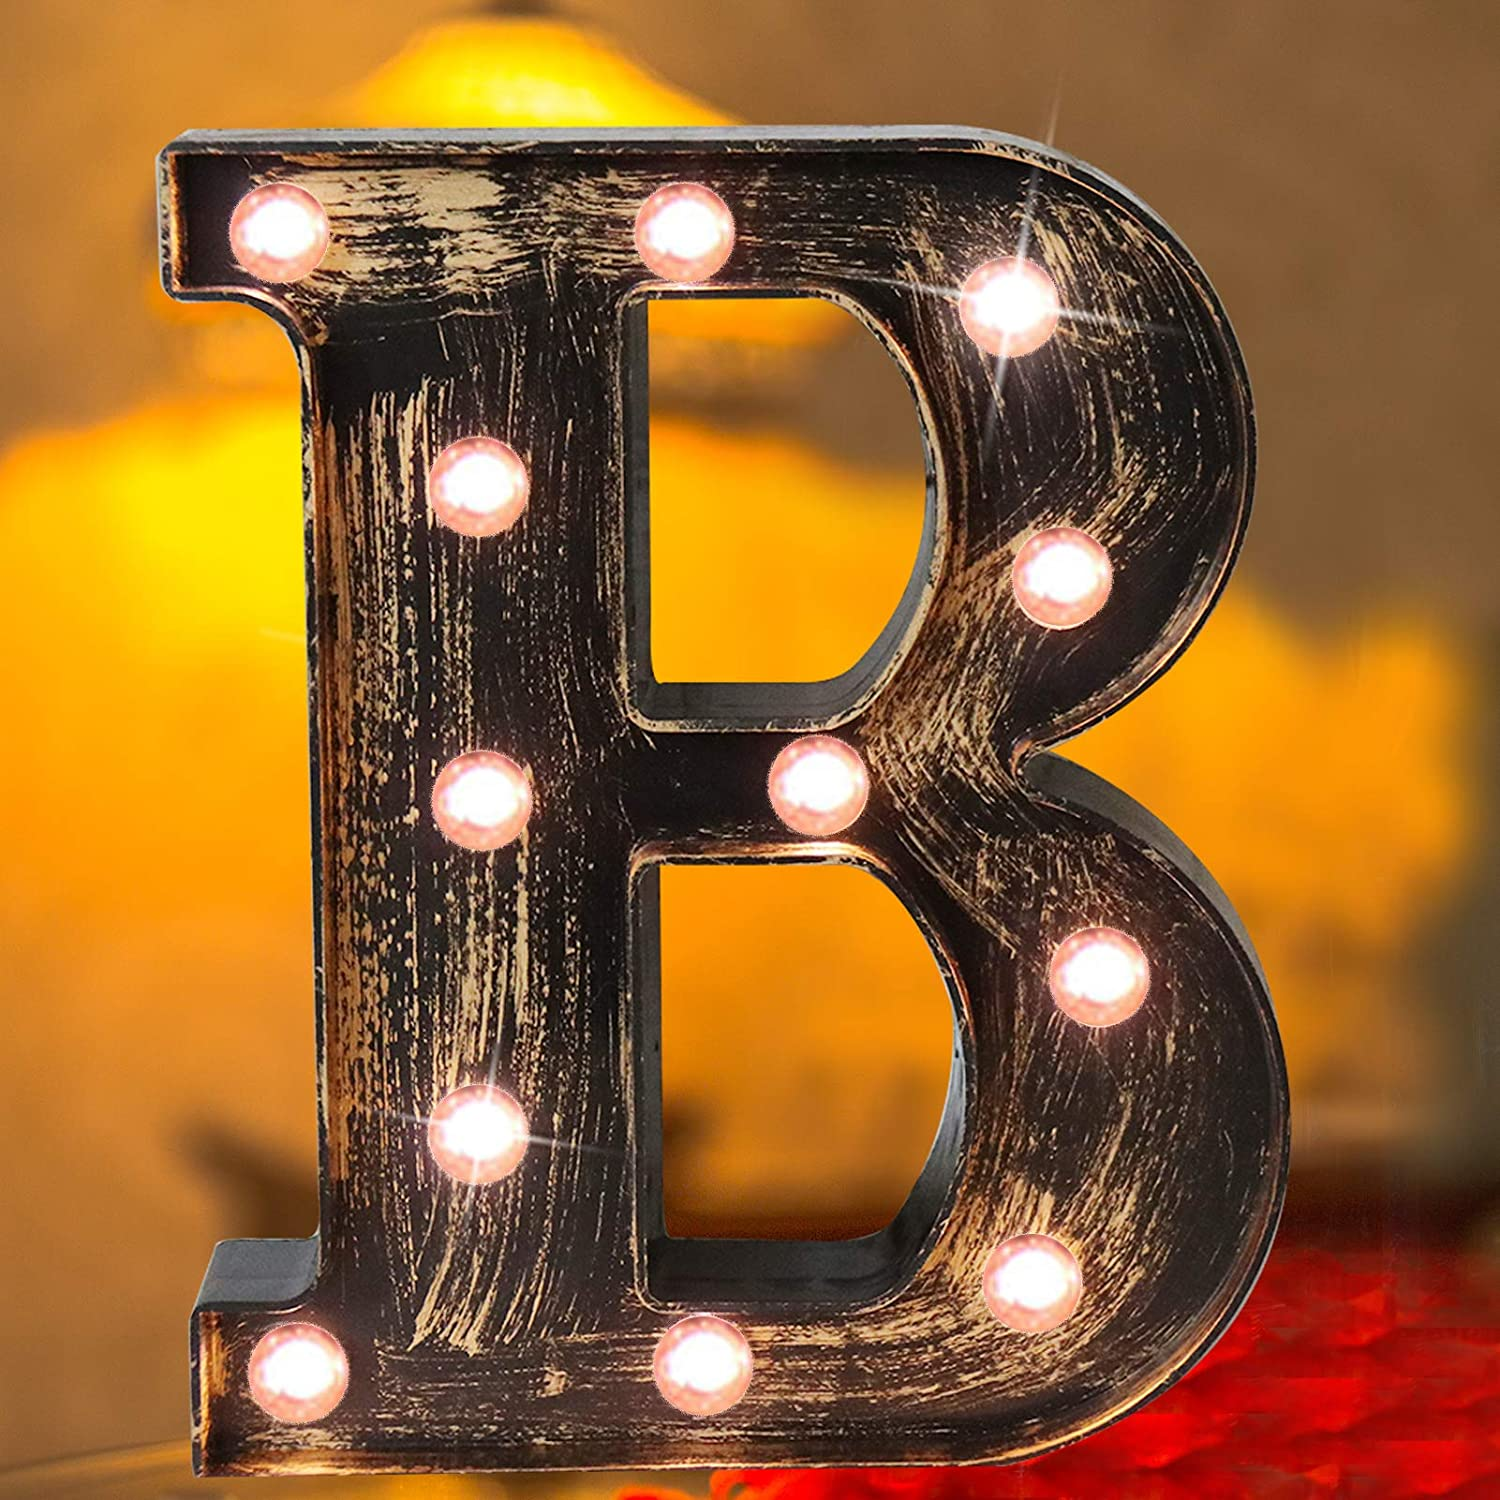 Elnsivo Vintage LED Marquee Letter Lights Light Up Industrial 26 Alphabet Name Signs Bar Cafe Initials Decor for Birthday Party Christmas Wedding Events(Letter B)